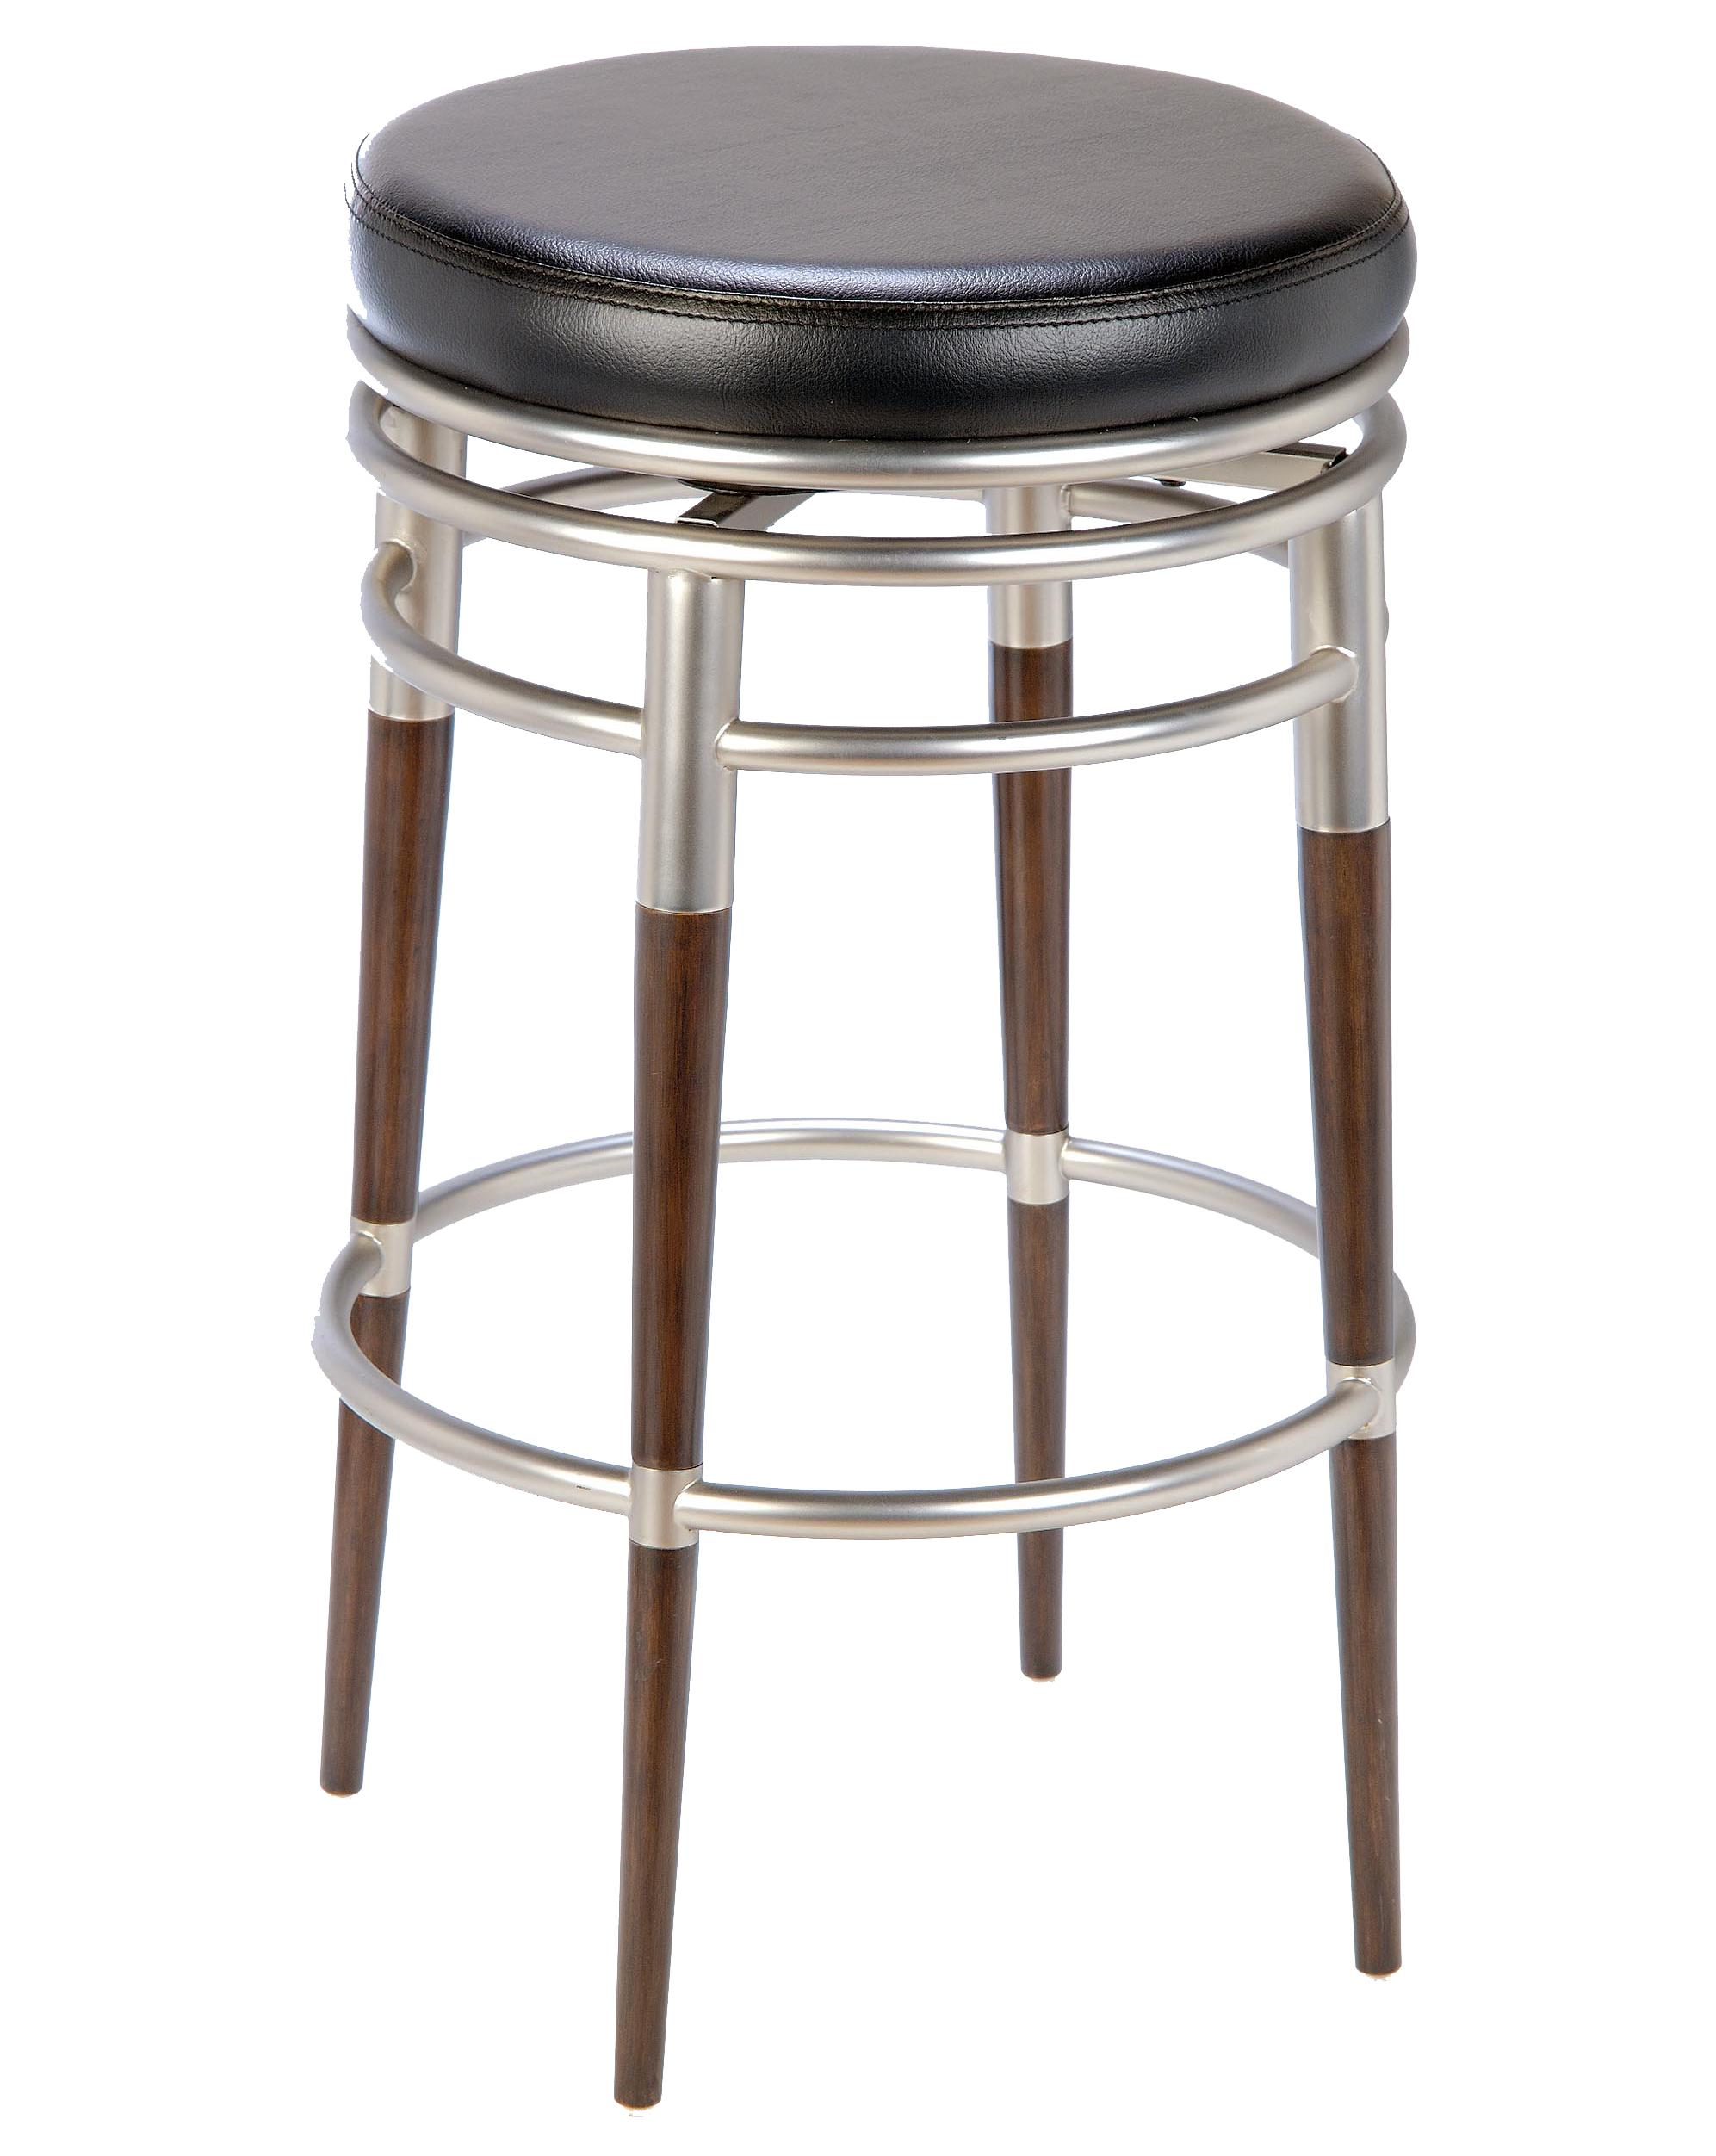 30 Salem Backless Swivel Bar Stool By Hillsdale Wolf And Gardiner